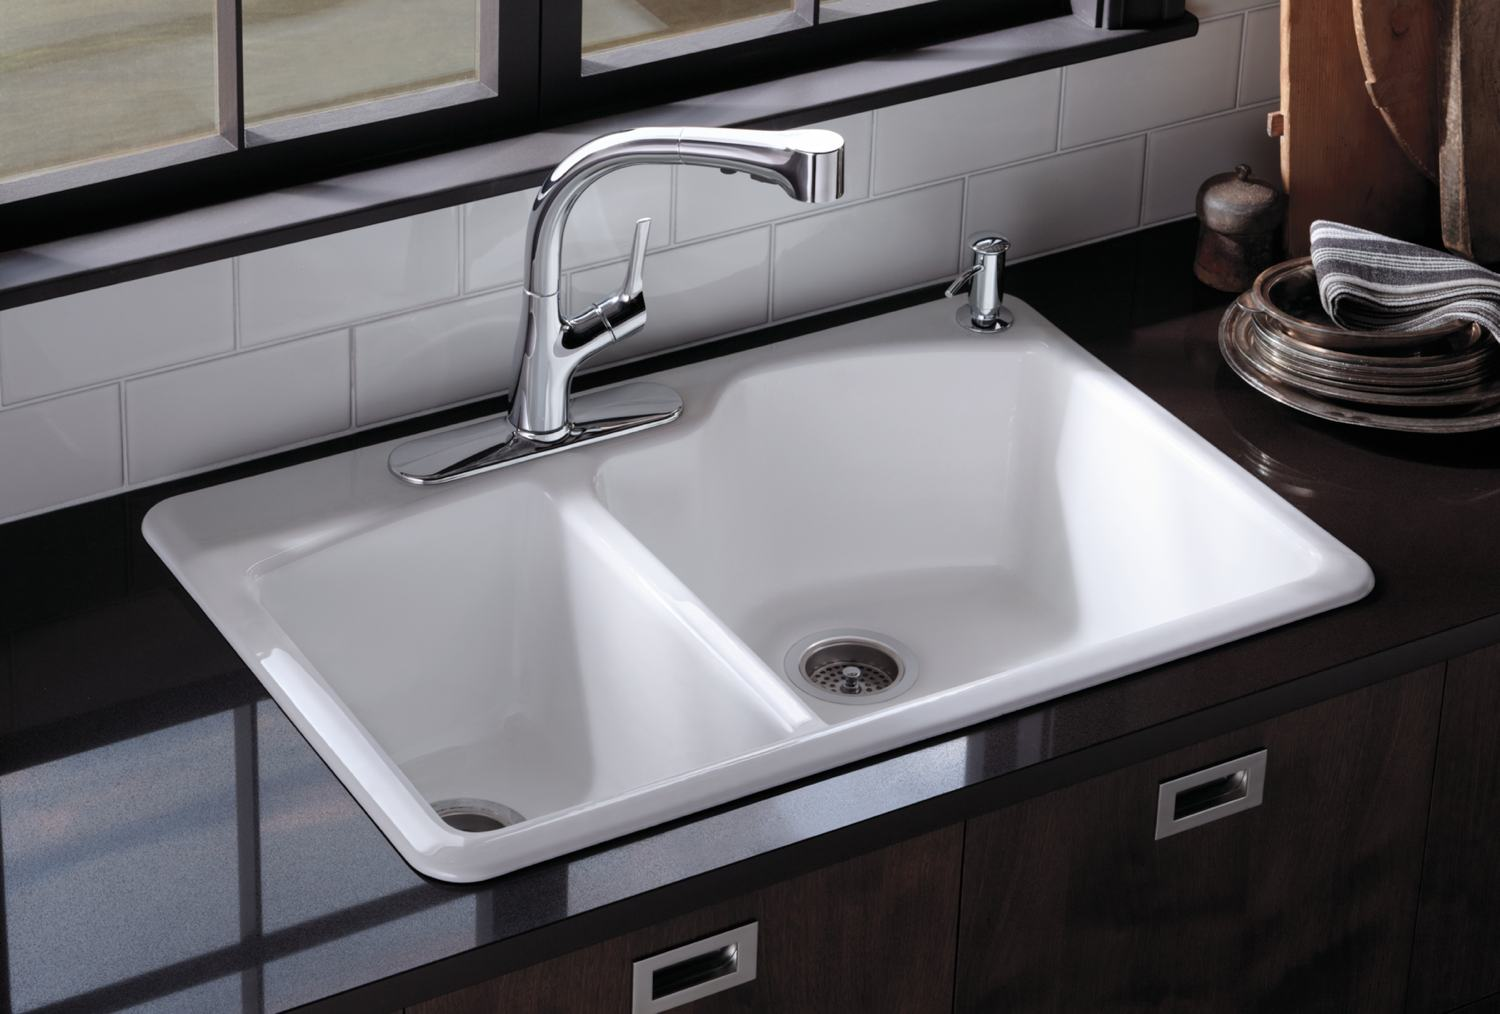 Kohler White Kitchen Faucet : ... Double Basin Sink with 2-Hole Faucet Drilling, White: Home Improvement